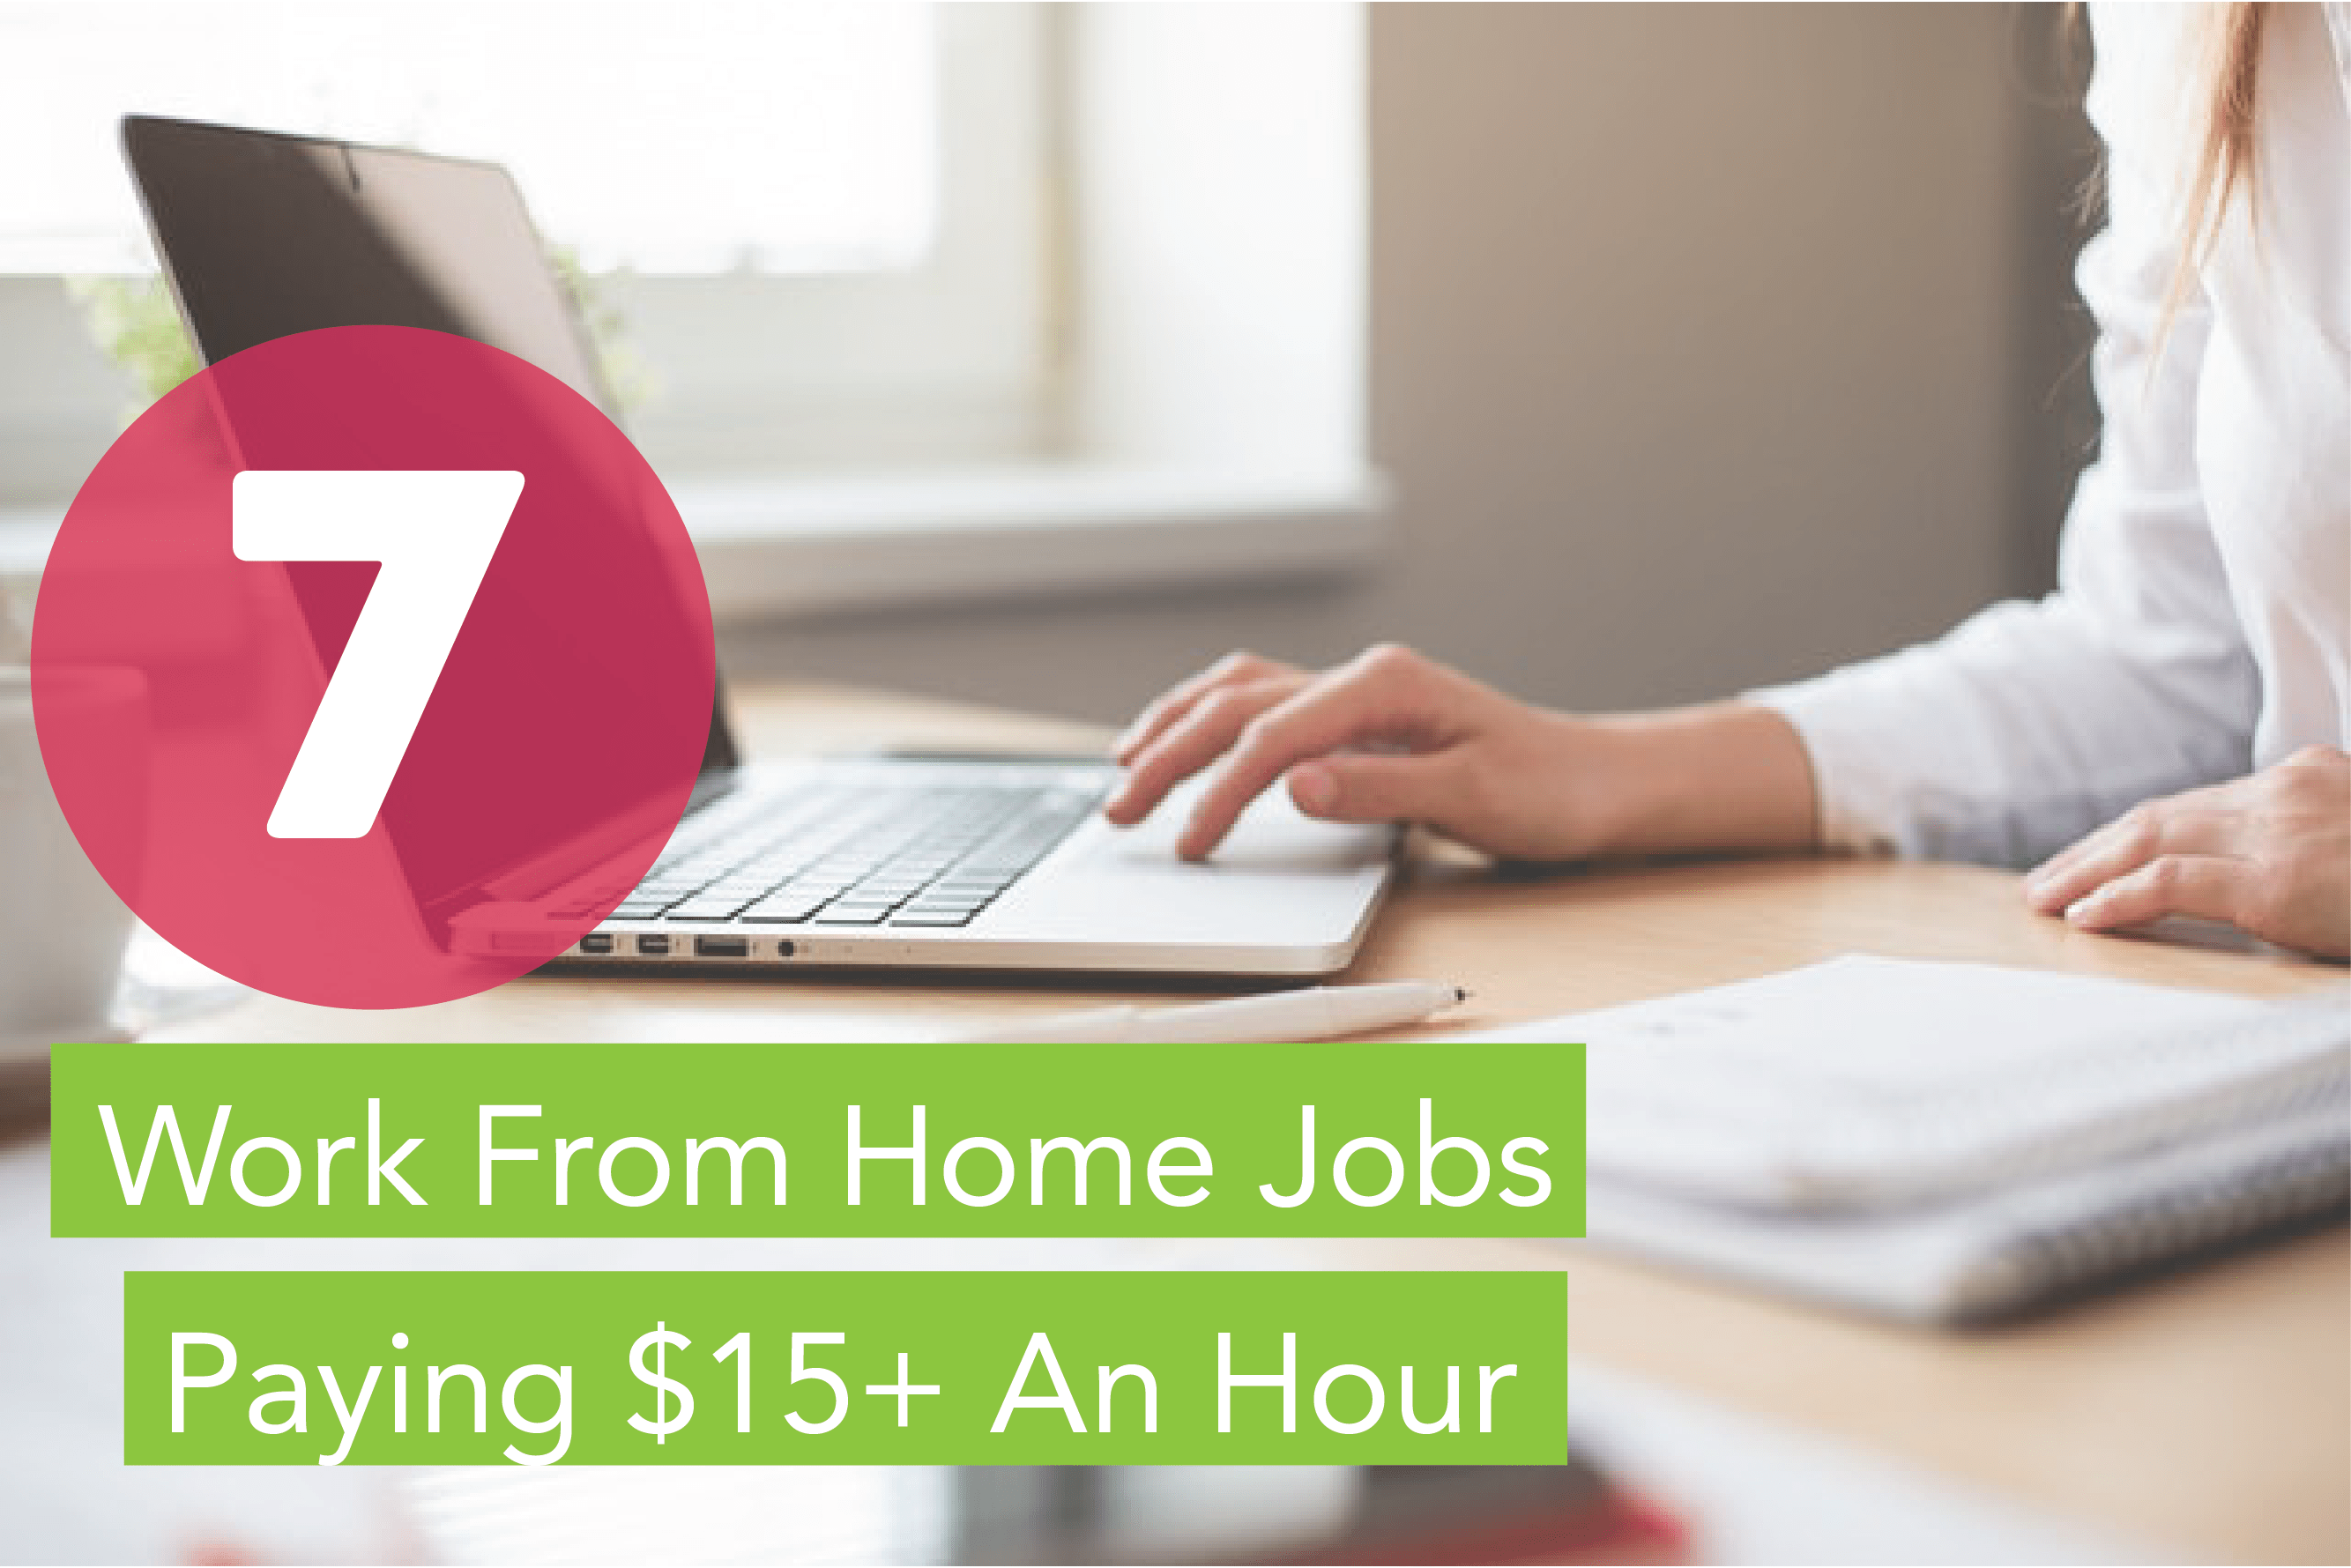 7 Work From Home Jobs Paying $15 An Hour You Need To Know About